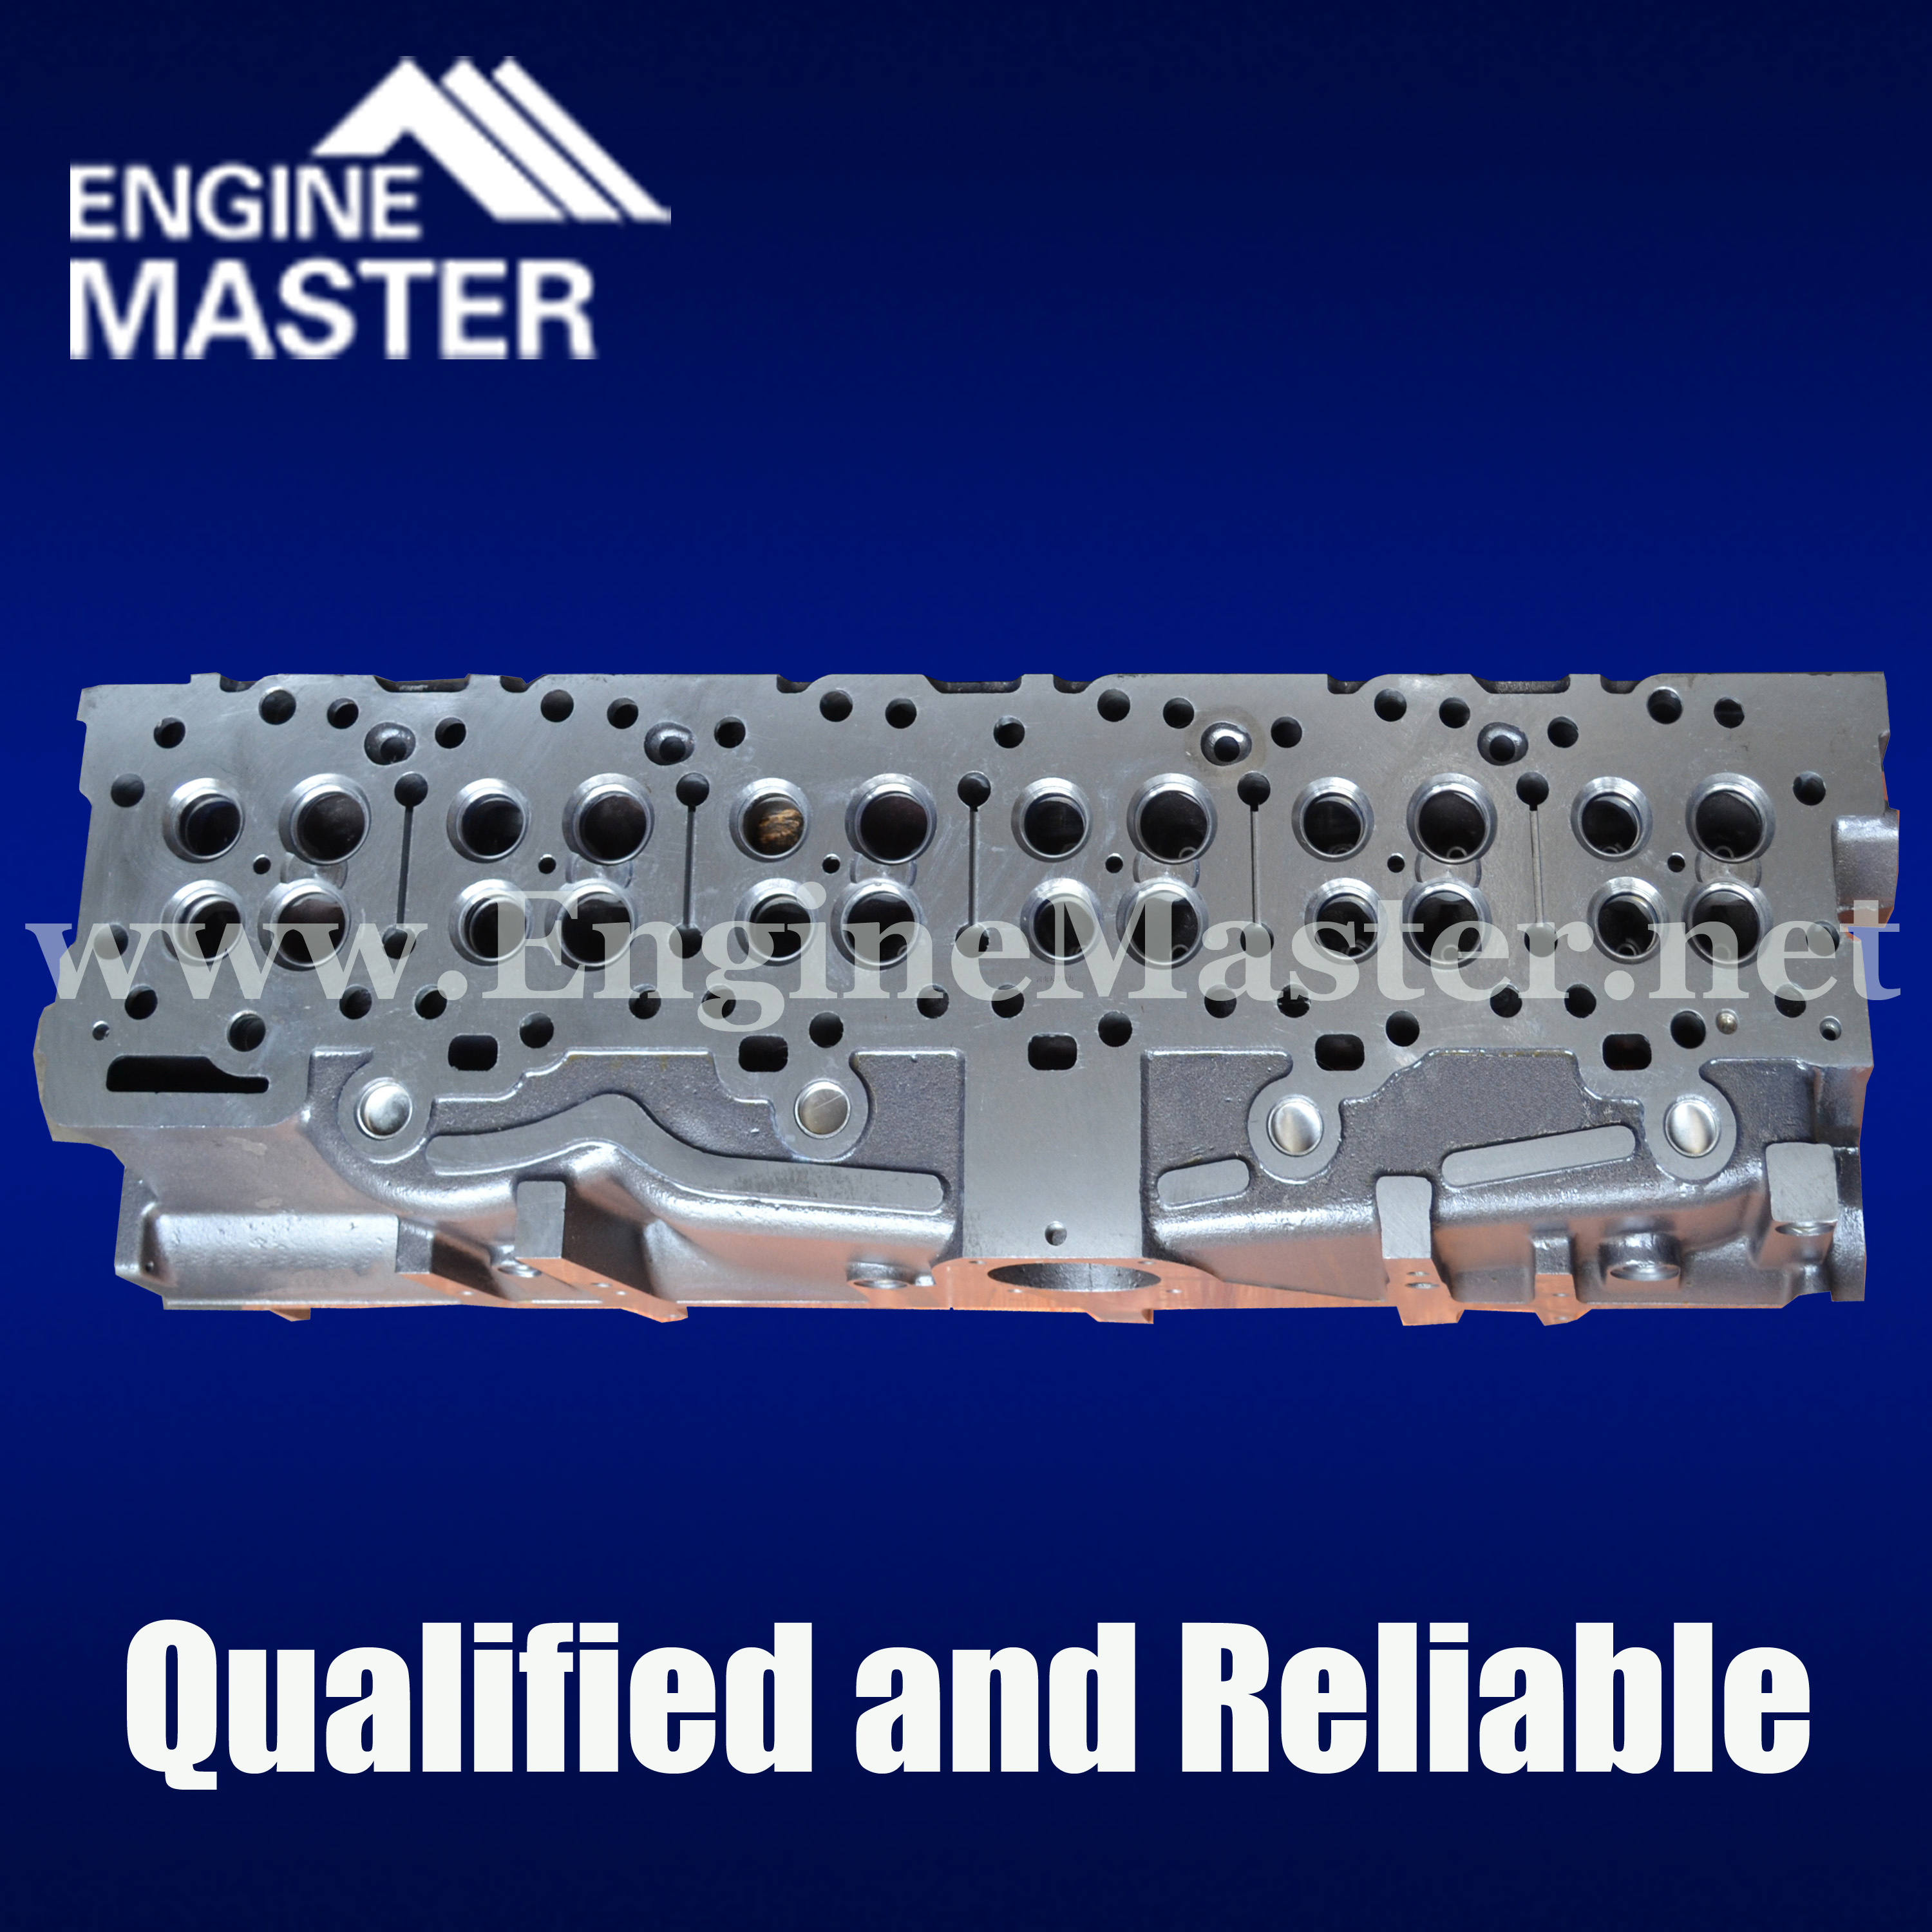 C15 Acert Engine Cylinder Head 2237263 For Cat Two Turbo - Buy C15 Engine  Cylinder Head,3406e Engine Cylinder Head,2237263 Engine Cylinder Head